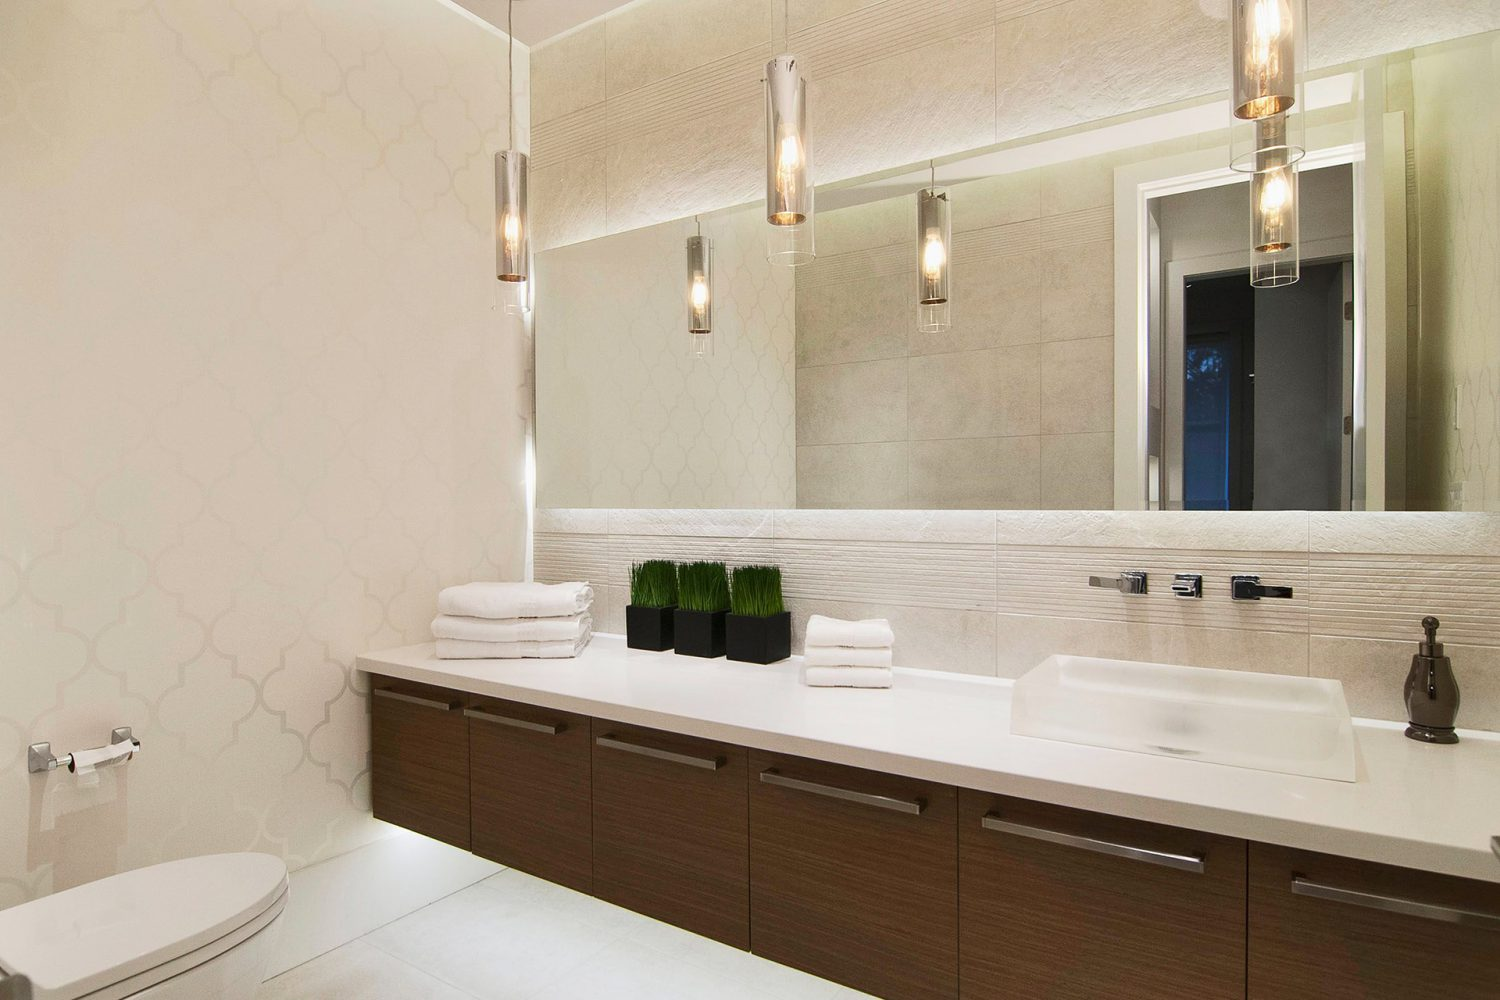 Forest interior designed bathroom with custom vanity designed by Midland Premium Properties in Vancouver, BC